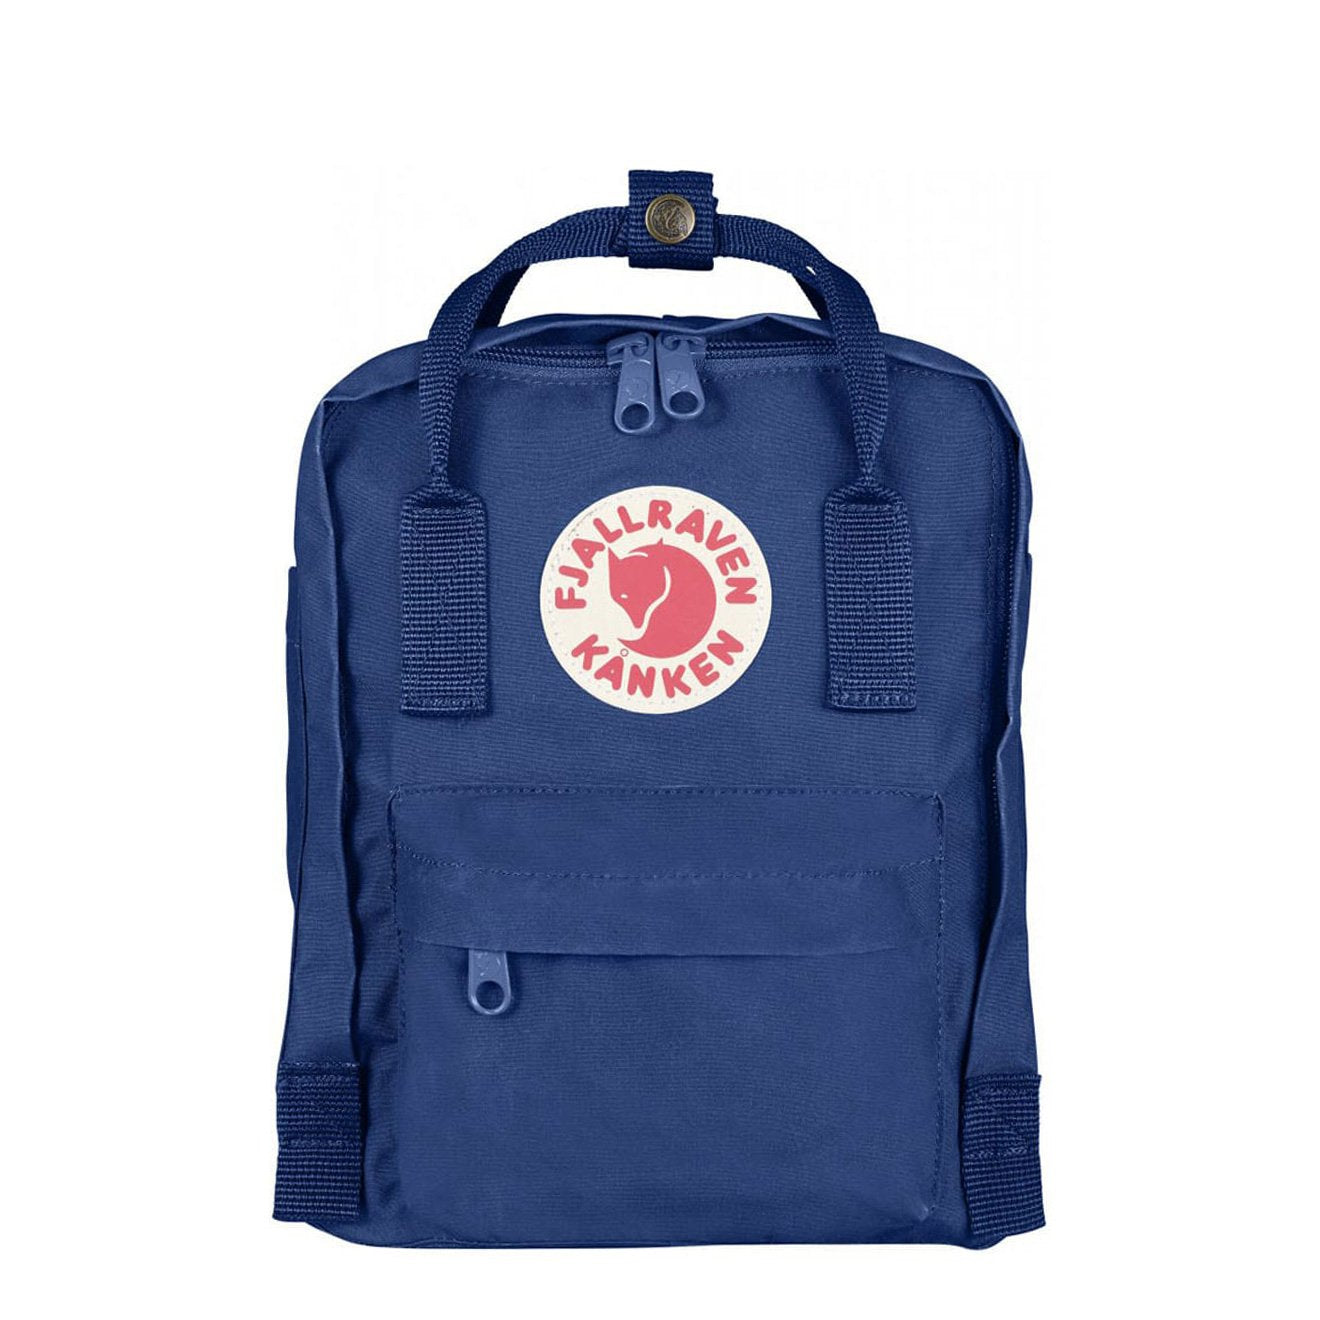 a59d91752 Fjallraven Kanken Mini Deep Blue - SALE 15% off | eBay